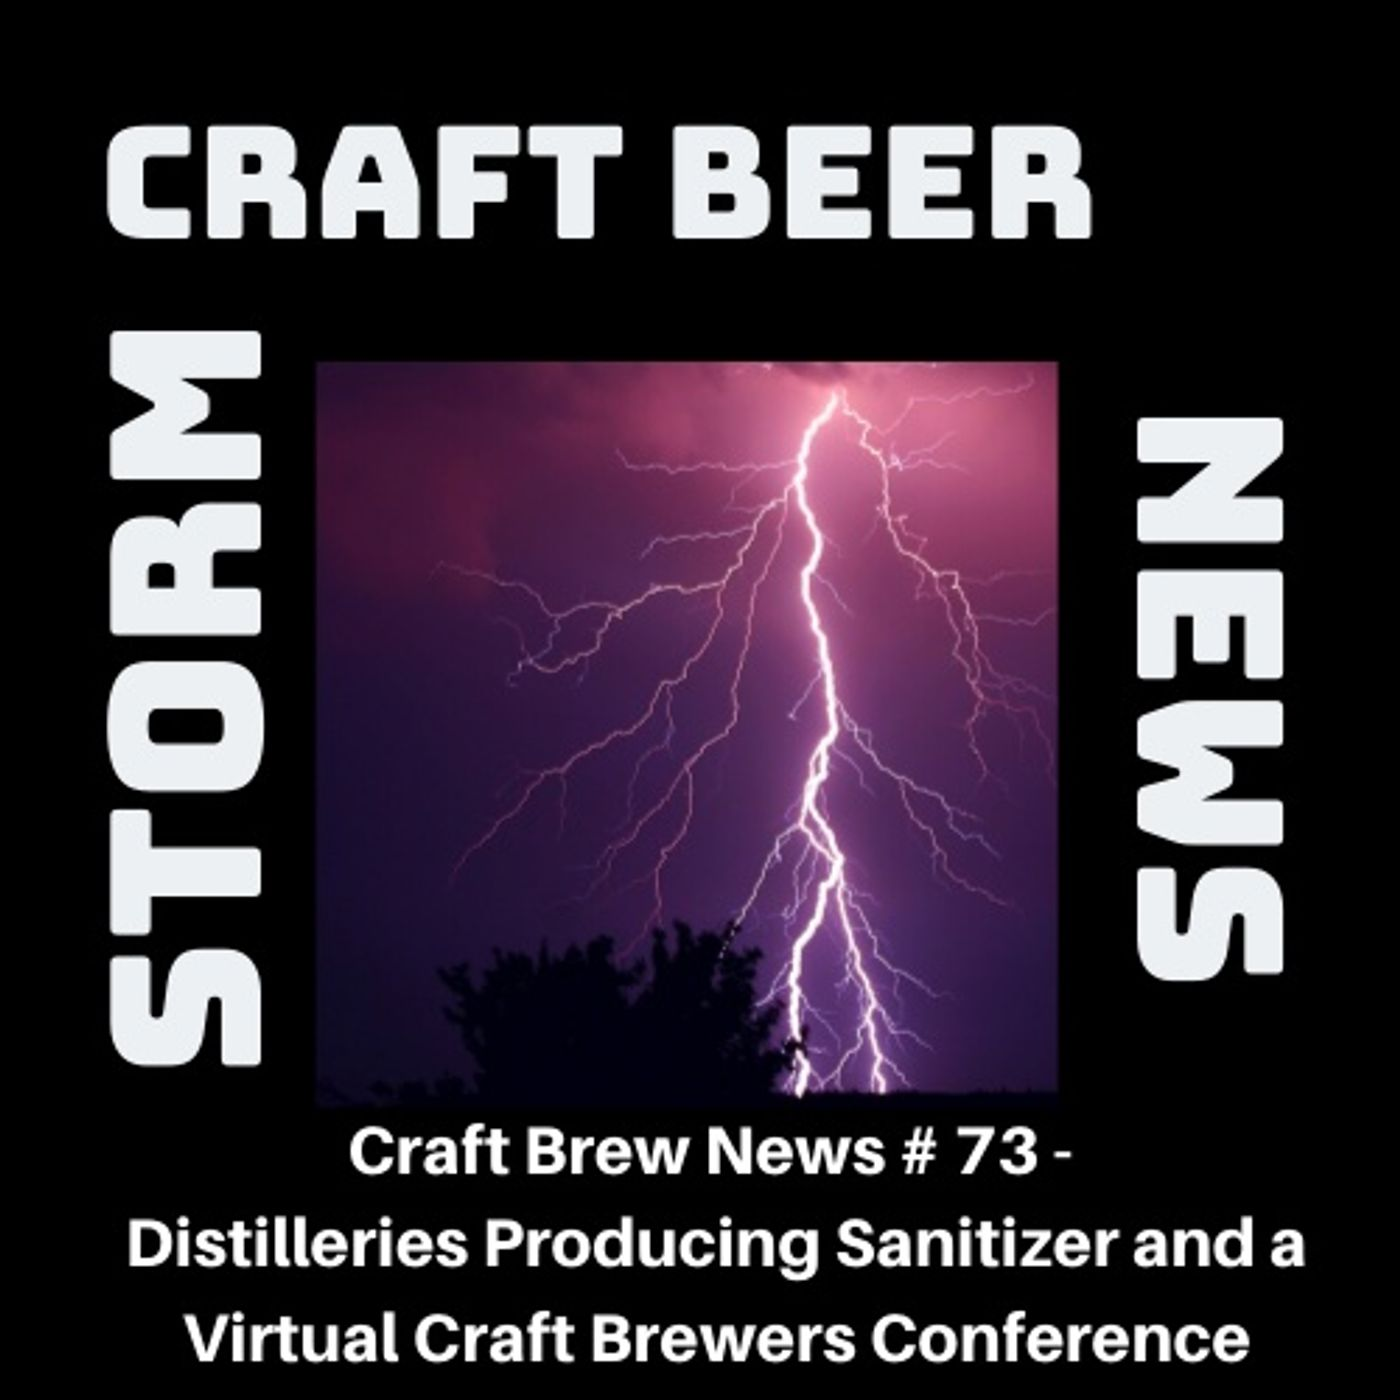 Craft Brew News # 73 - Distilleries Producing Sanitizer and a Virtual Craft Brewers Conference